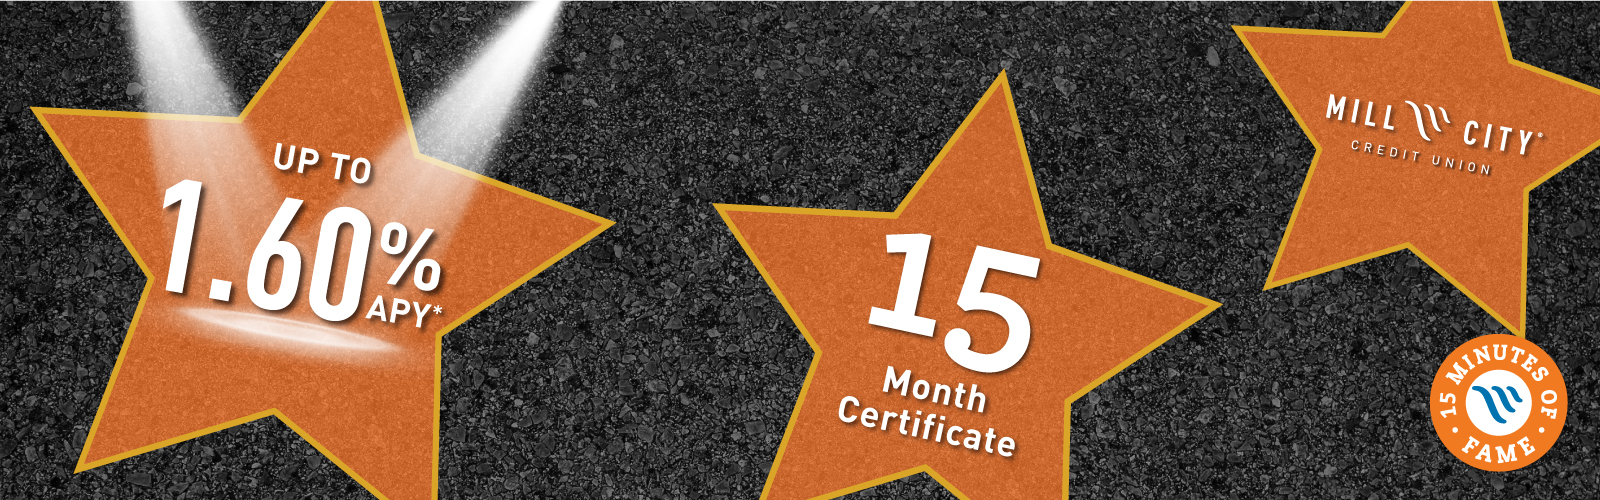 orange stars with special 1.60% APY for 15 month certificate